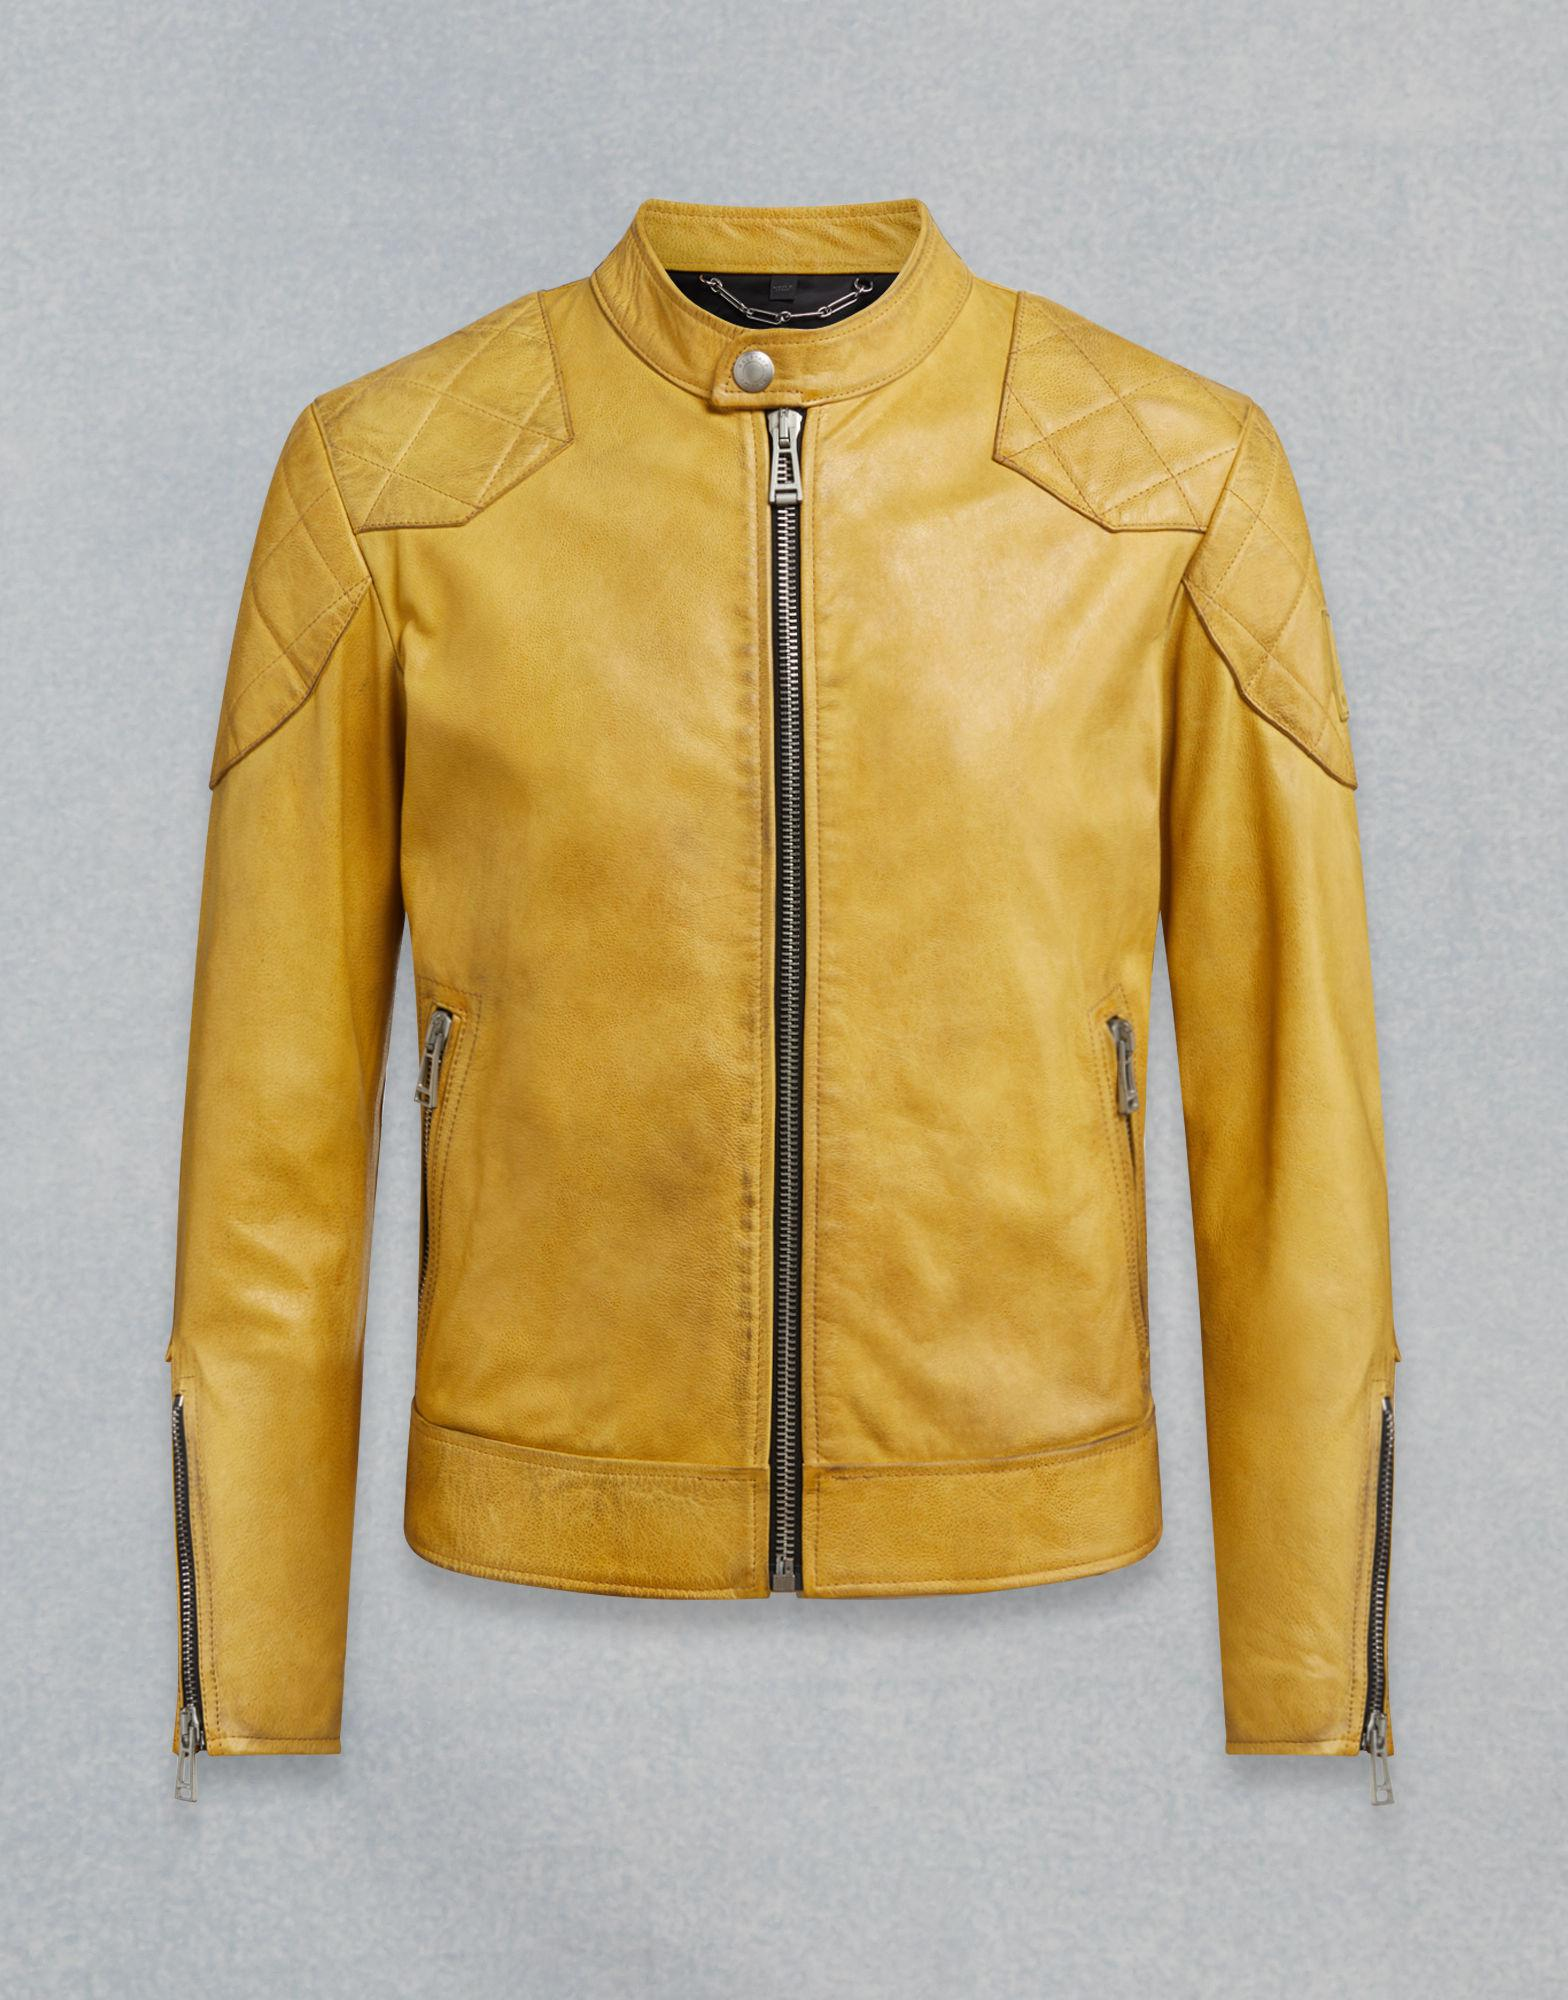 243b32f2efa7 Lyst - Belstaff Outlaw Leather Jacket in Yellow for Men